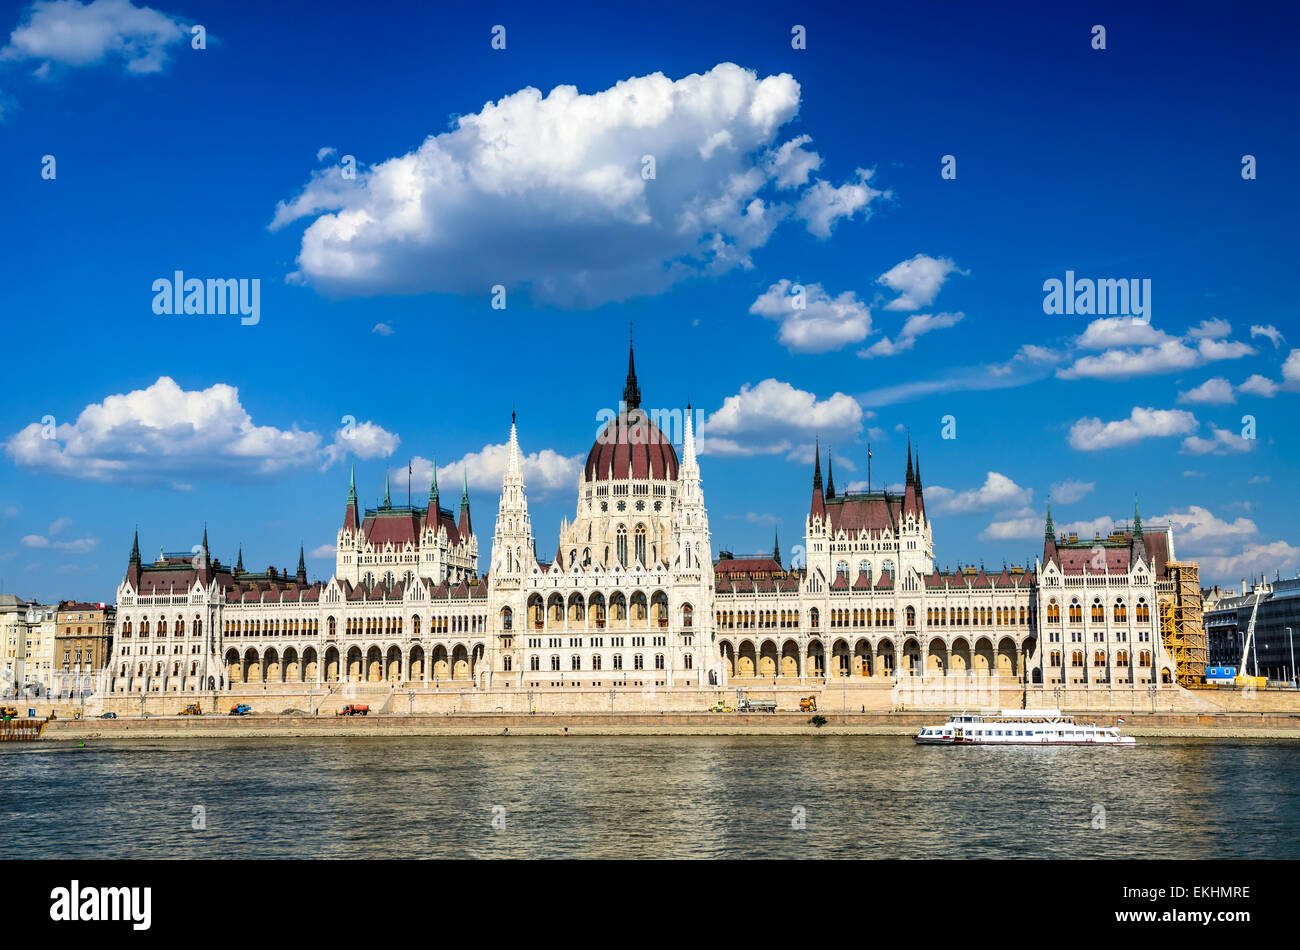 Budapest, Hungary. Hungarian Parliament building, Orszaghaz, is the seat of the National Assembly of Hungary. - Stock Image